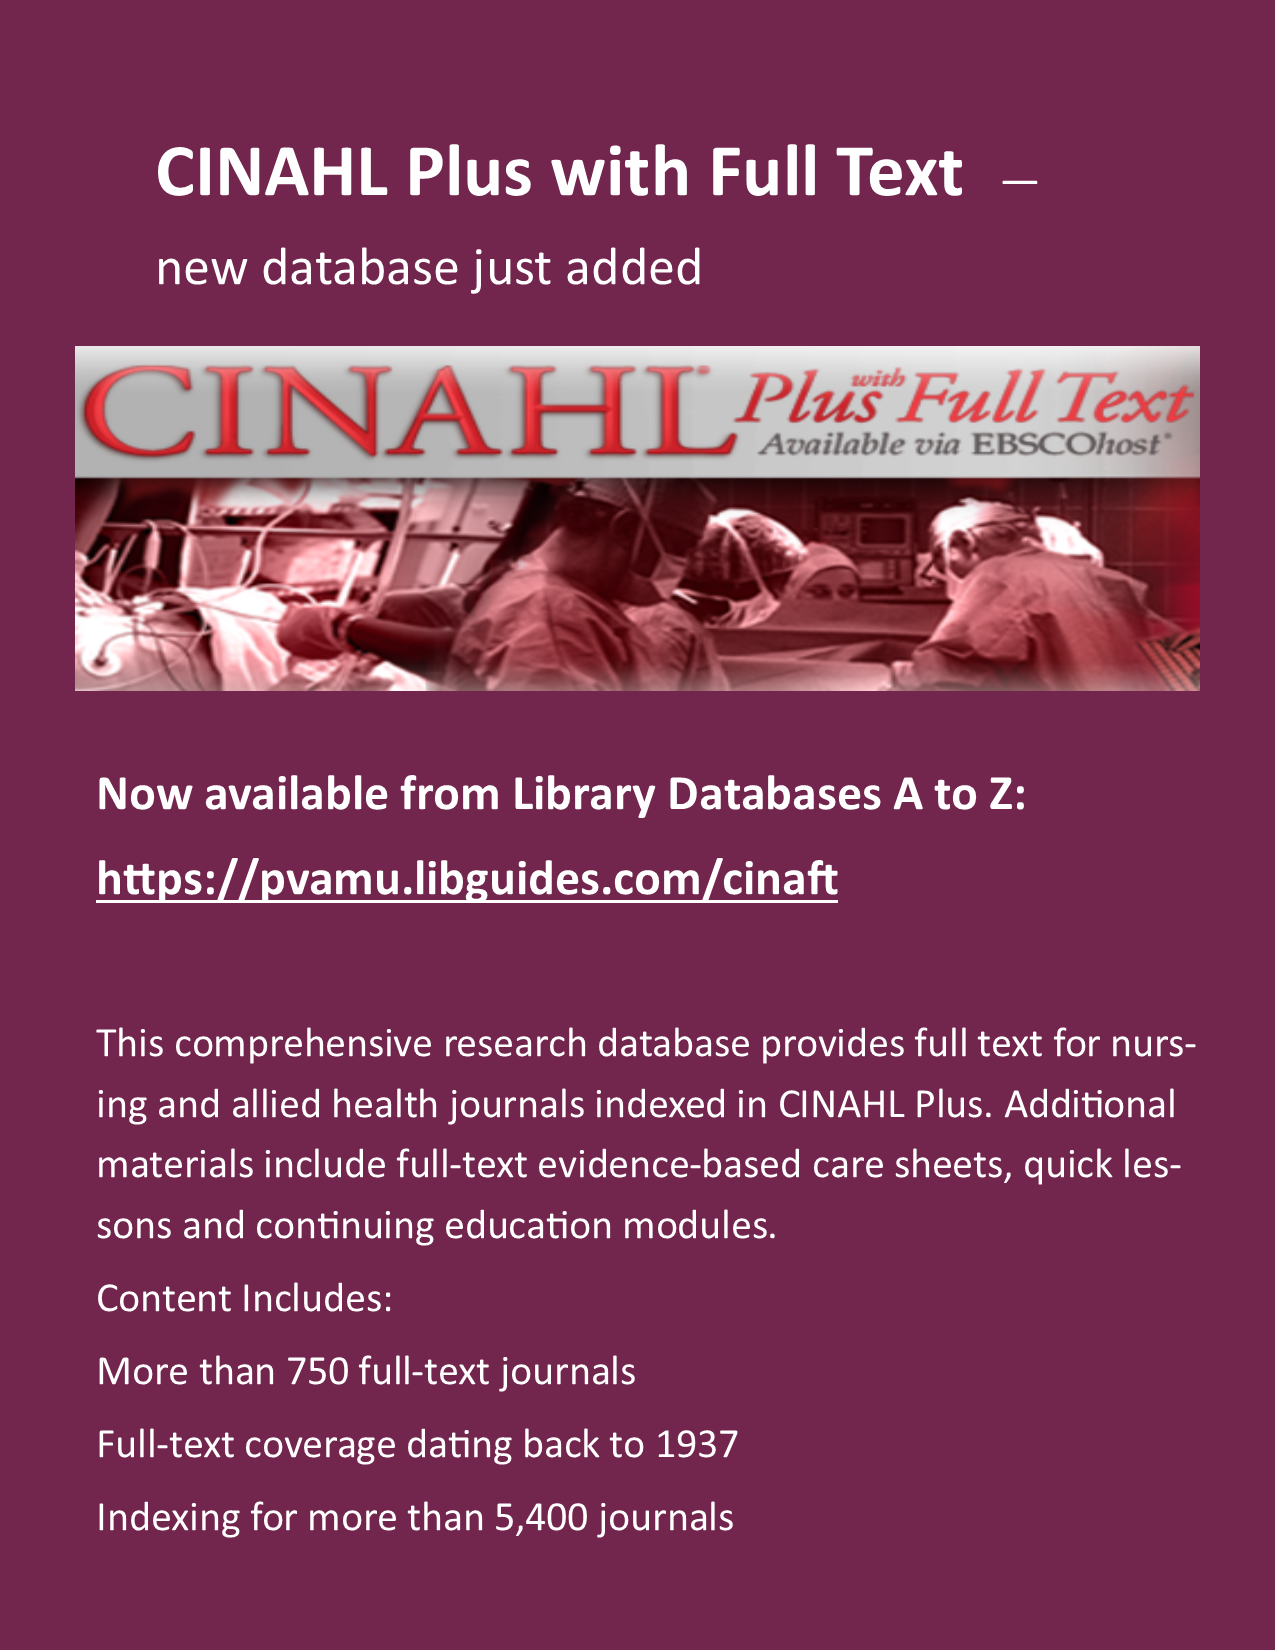 New Database Added: CINAHL Plus with Full Text